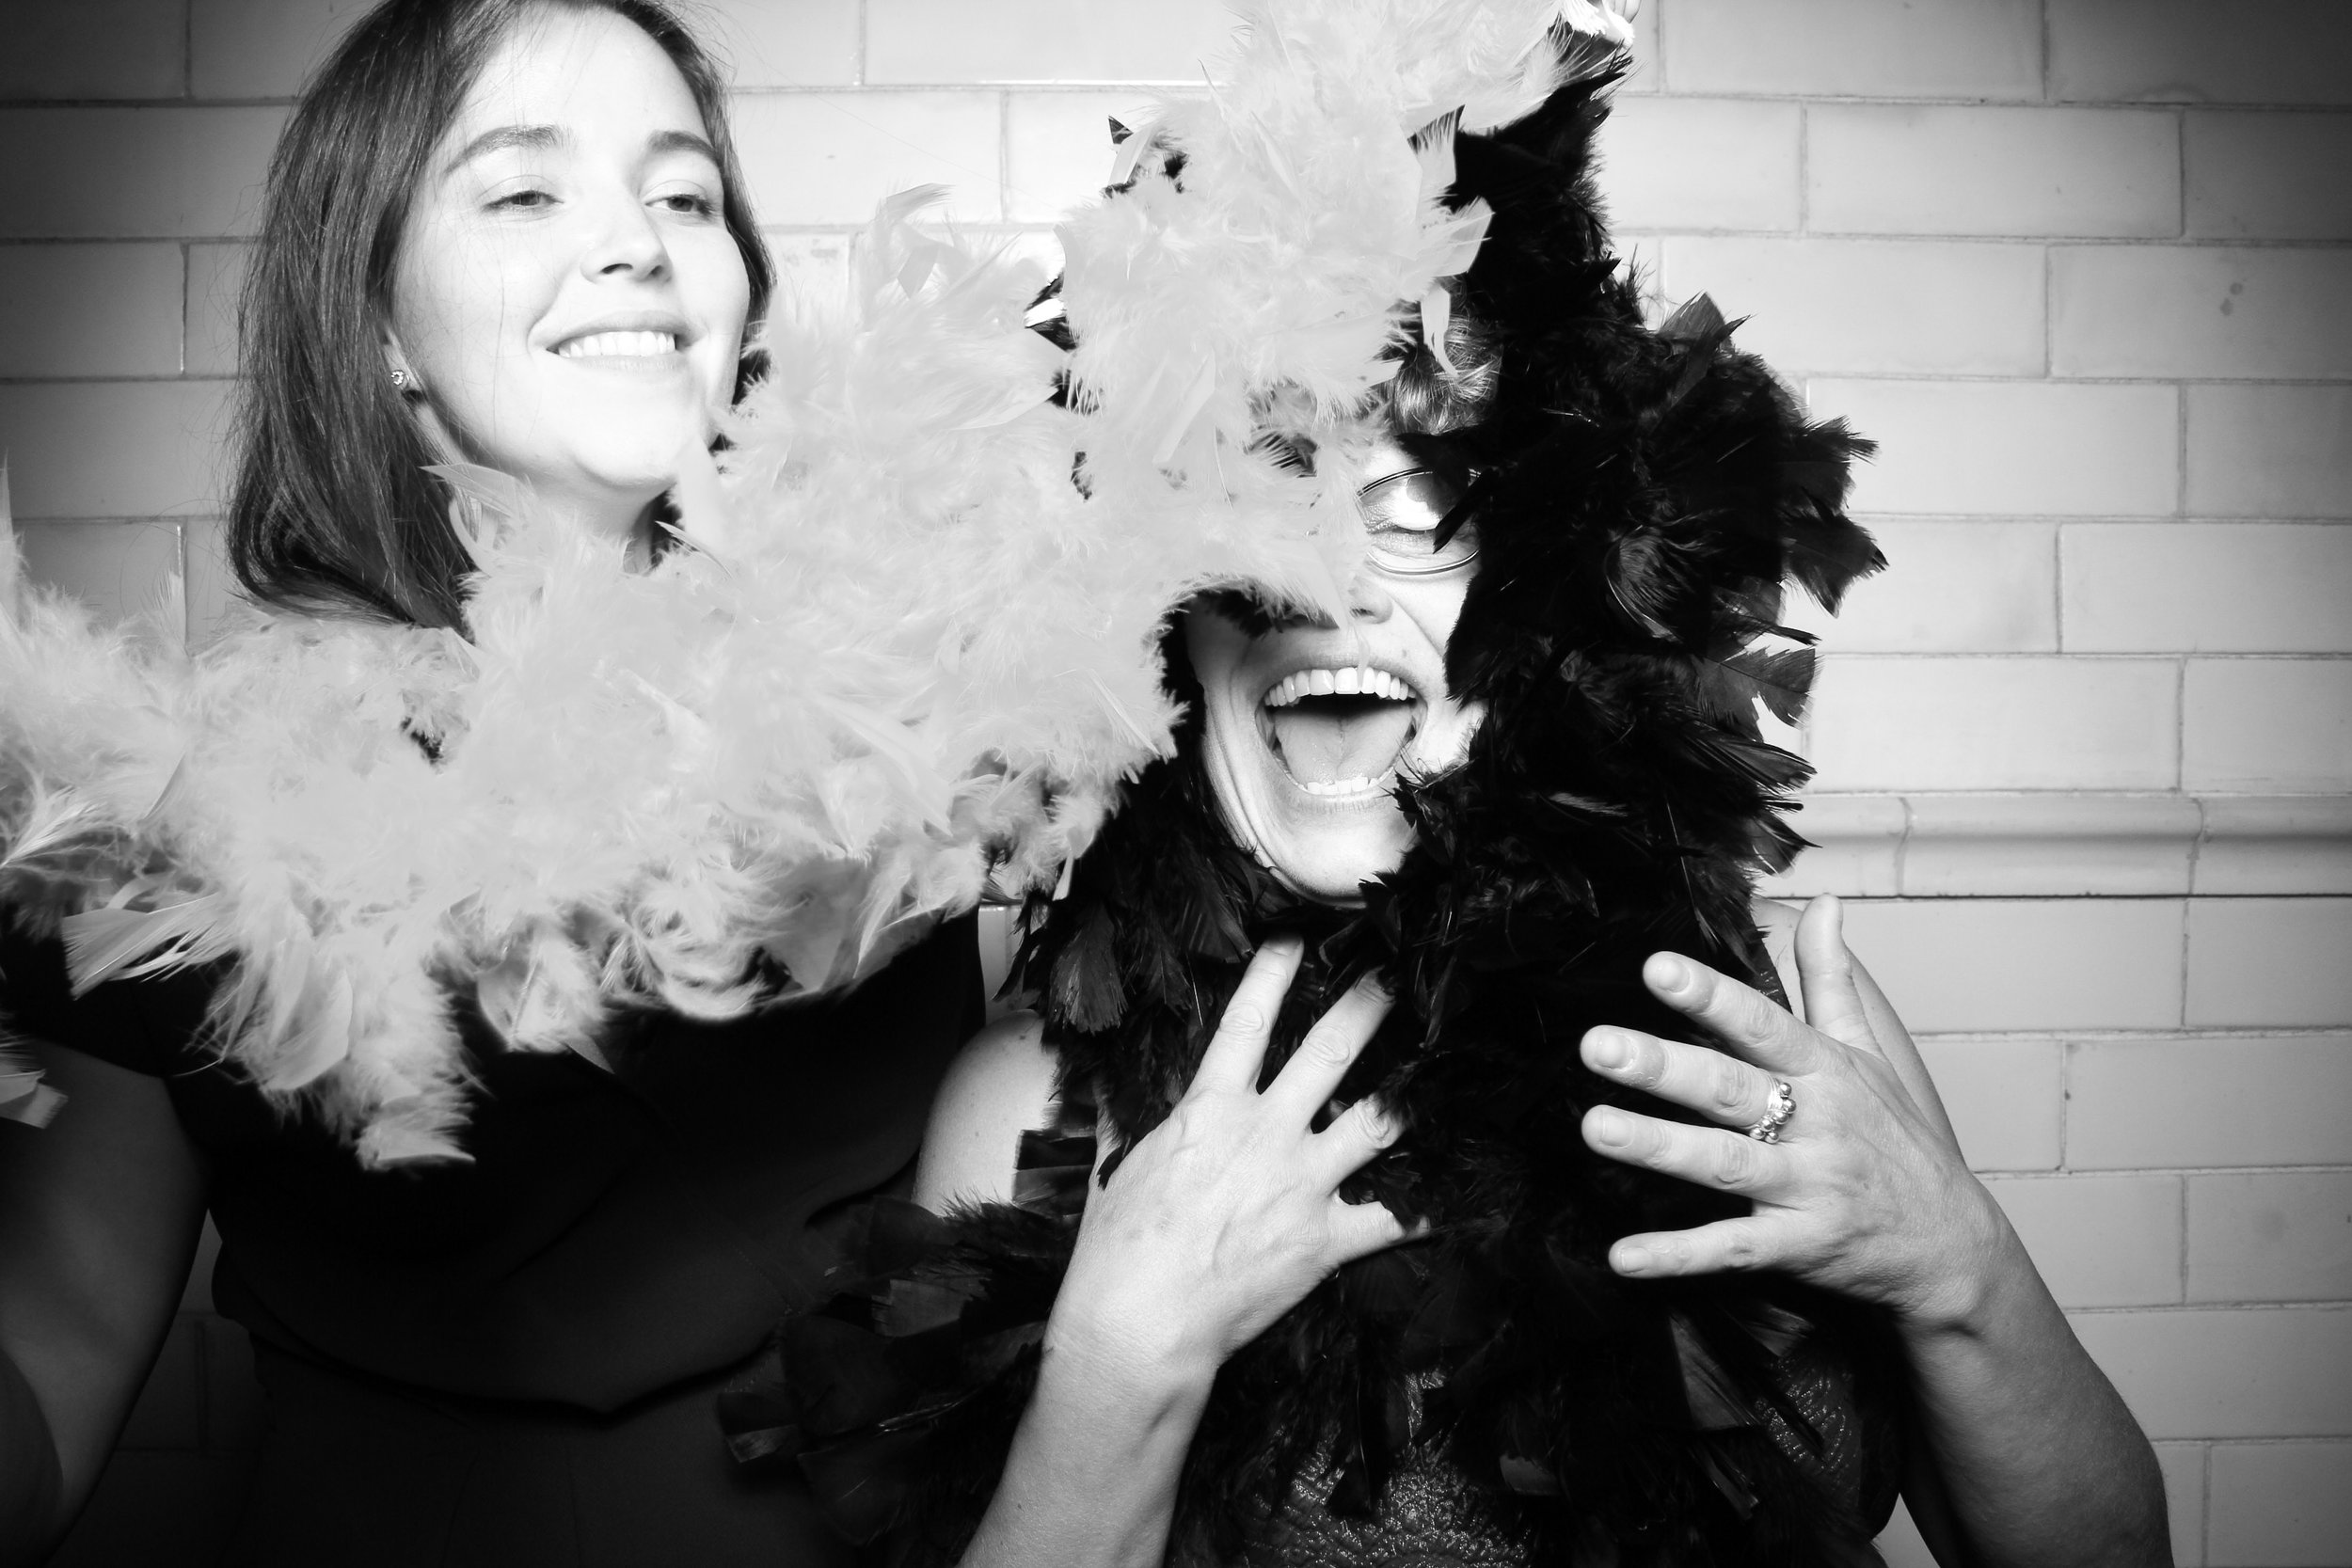 Firehouse_Chicago_Edgewater_Wedding_Reception_Photo_Booth_28.jpg